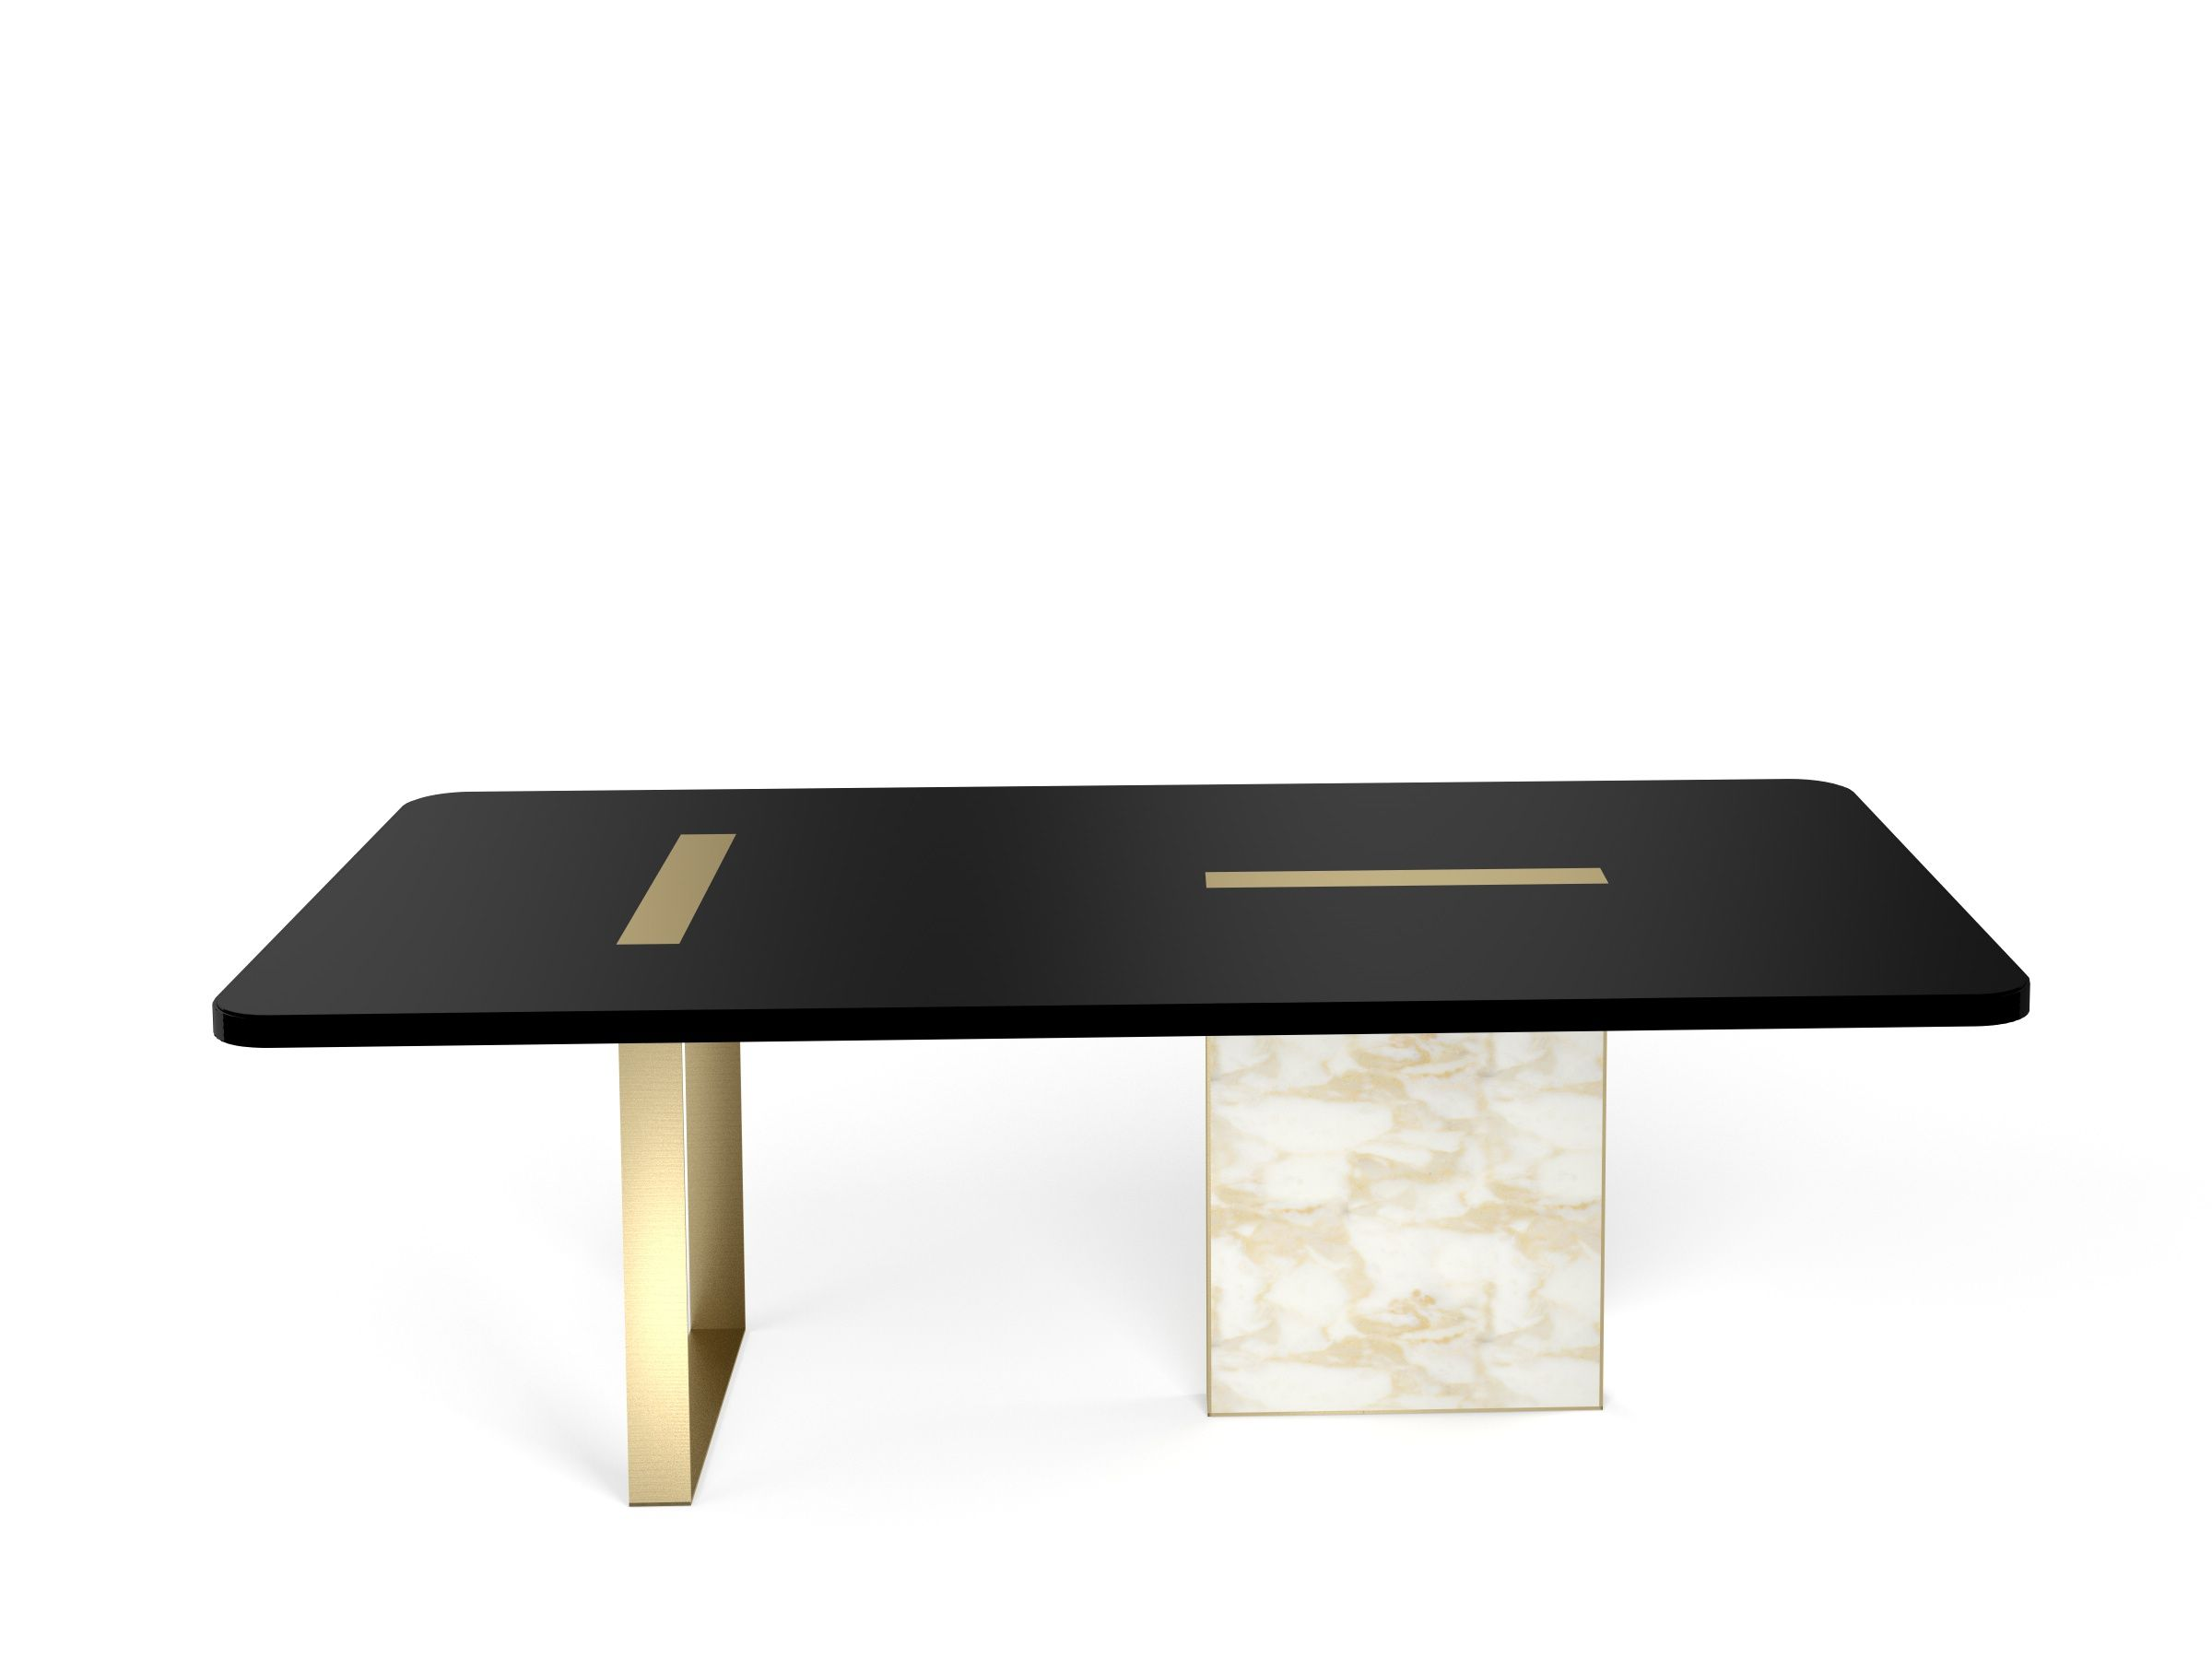 Tyron Dining Table 220x110 In Black Laquered Wood With Brushed